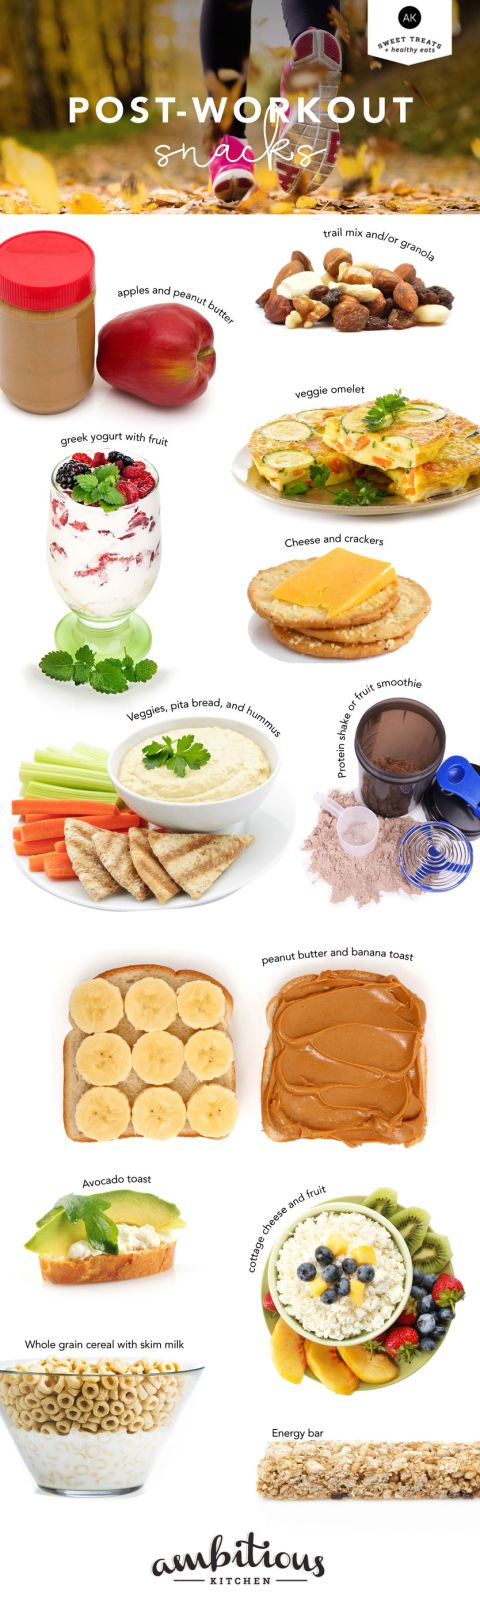 12 Healthy Post Workout Snacks -- provides great options for refueling your muscles! Great options!